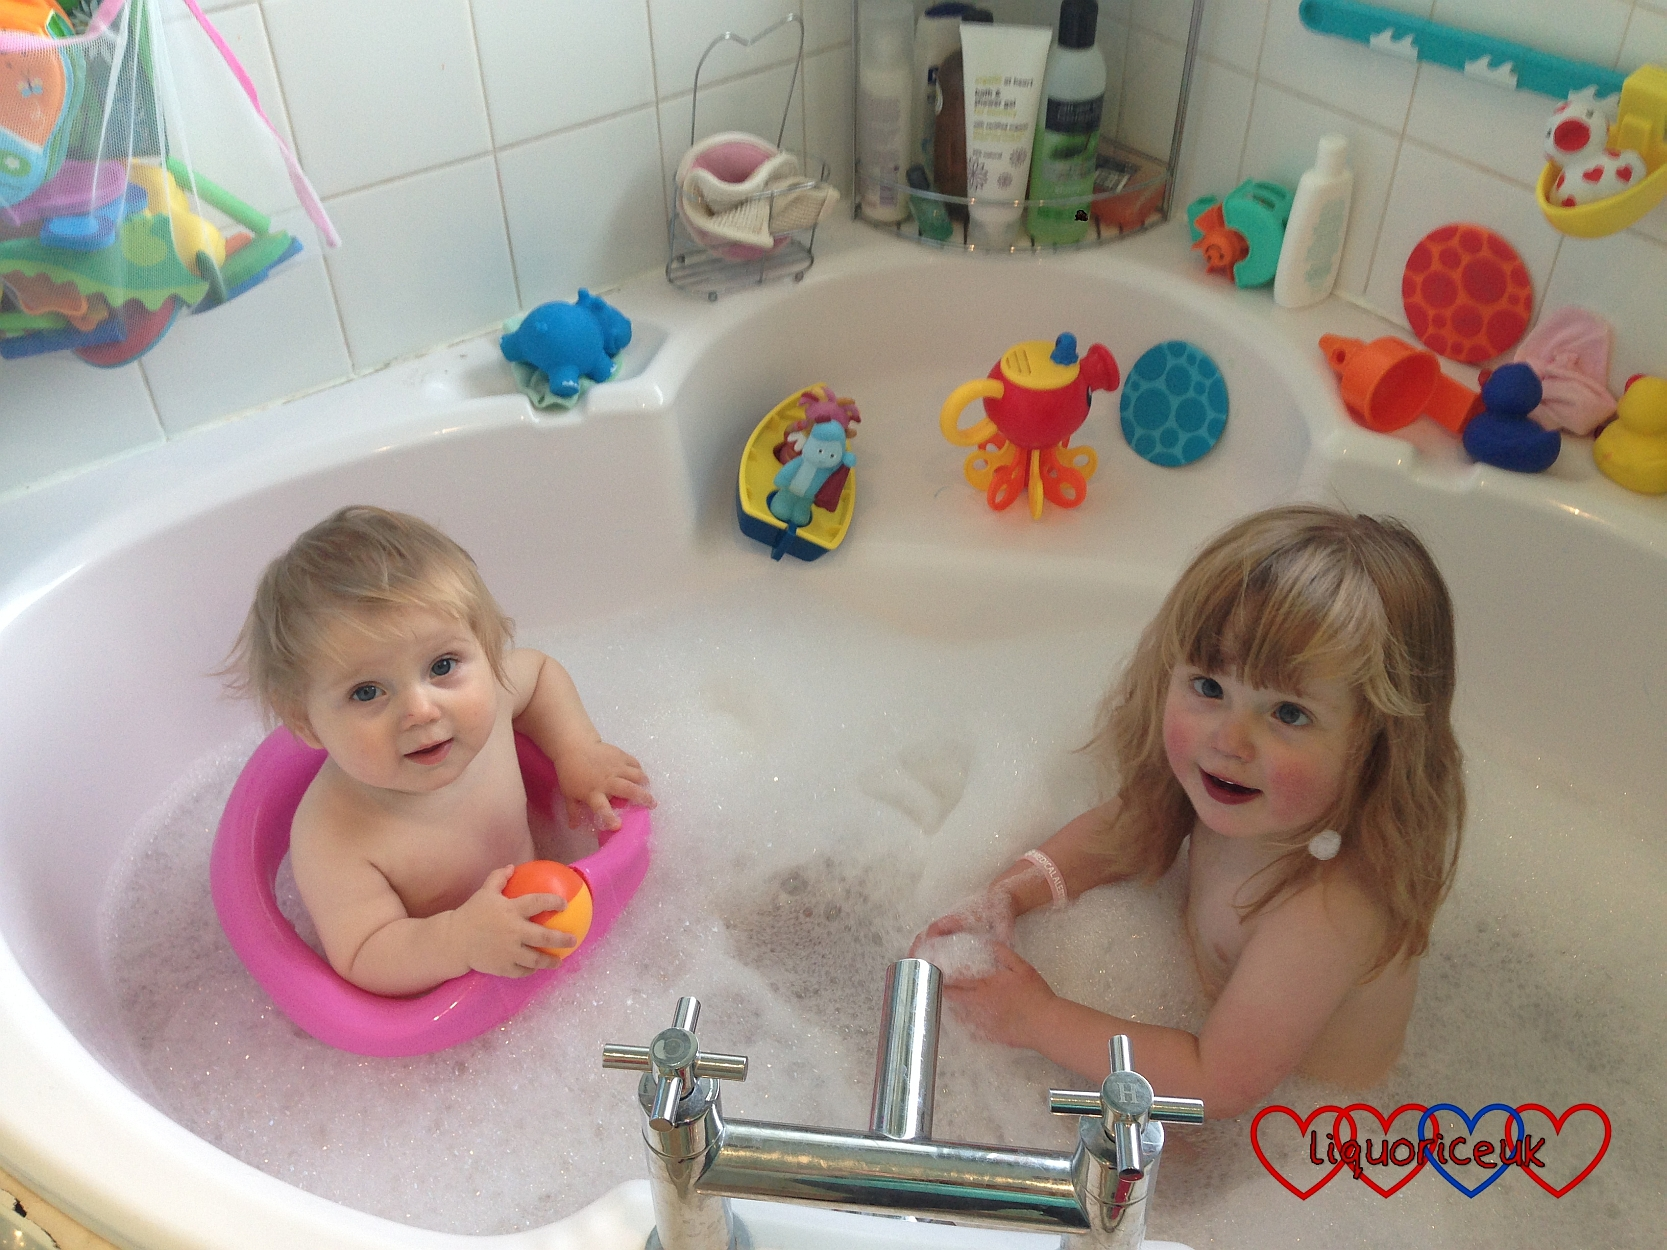 Safety 1st Swivel Bath Seat - Little Hearts, Big Love